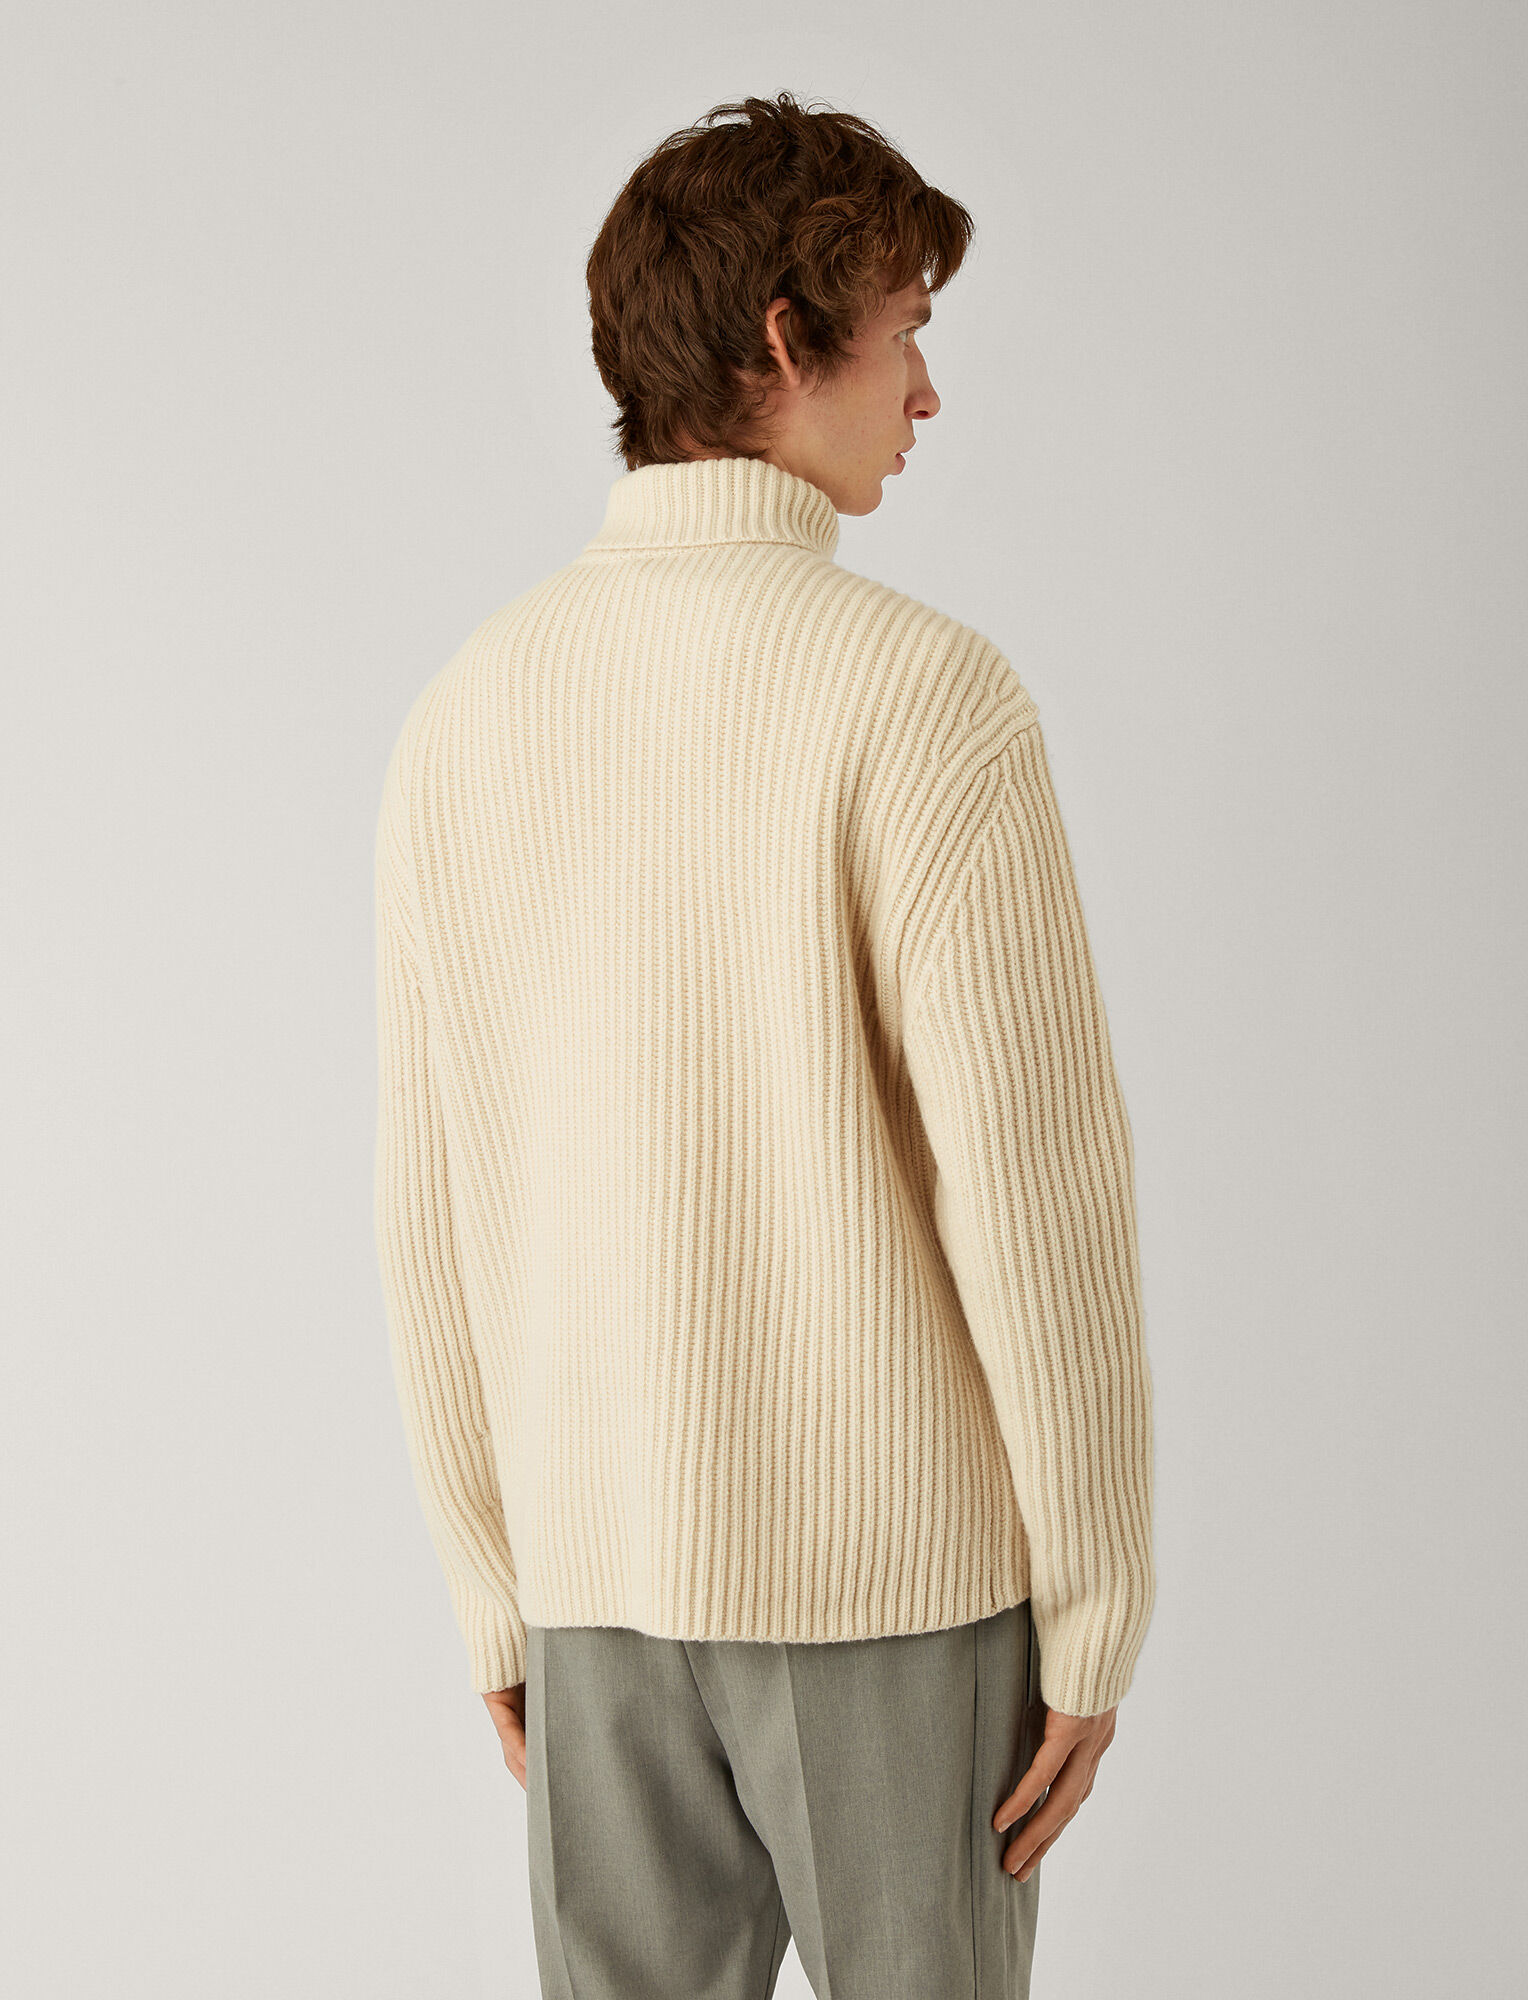 Joseph, High Neck Soft Wool Cardigan Stitch Knit, in IVORY